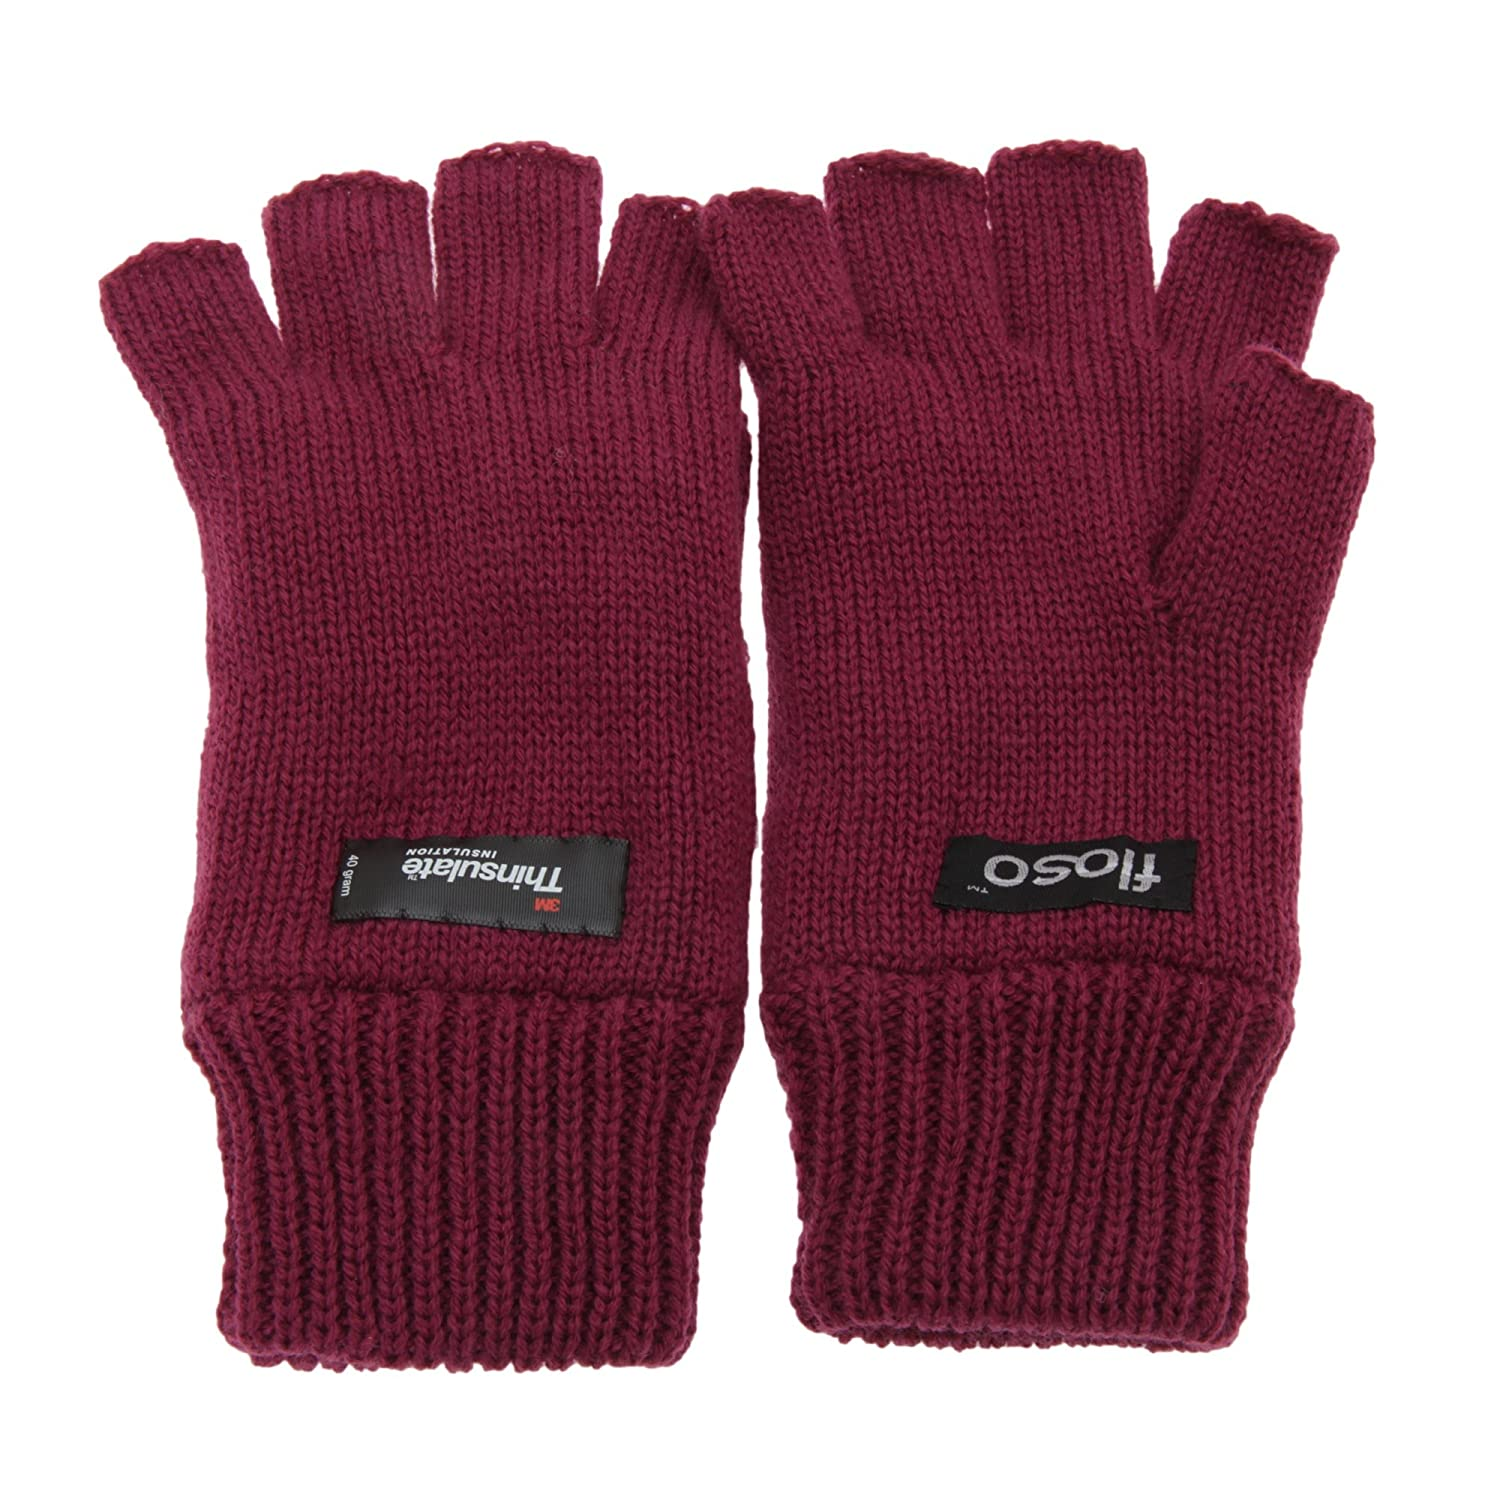 Fingerless gloves thinsulate - Floso Ladies Womens Thinsulate Thermal Fingerless Winter Gloves 3m 40g One Size Raspberry At Amazon Women S Clothing Store